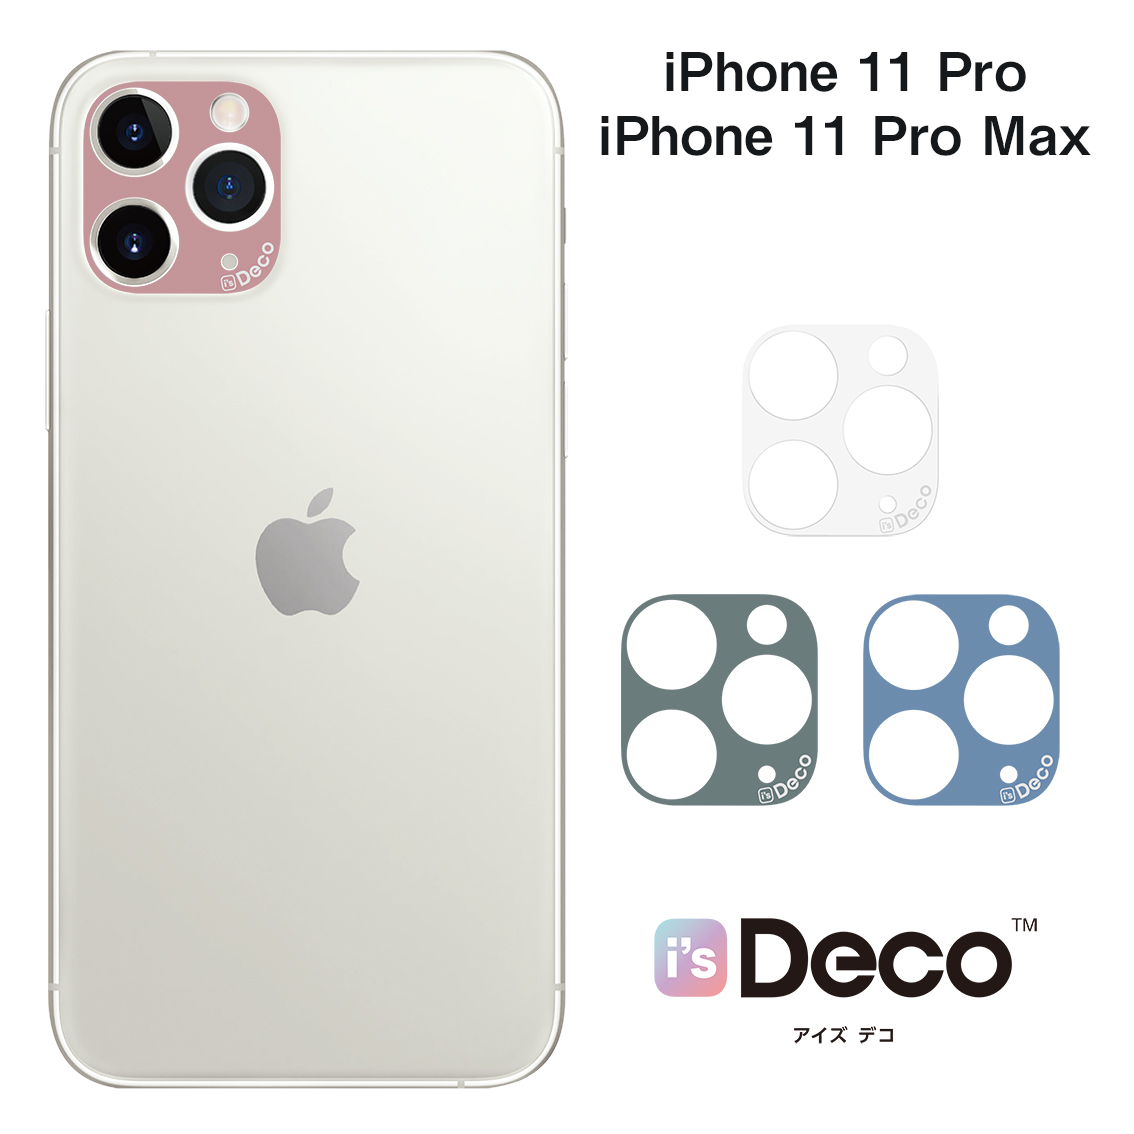 iPhone 11 Pro/11 Pro Max  i's Deco  [STANDARD COLOR (B09-B12)]